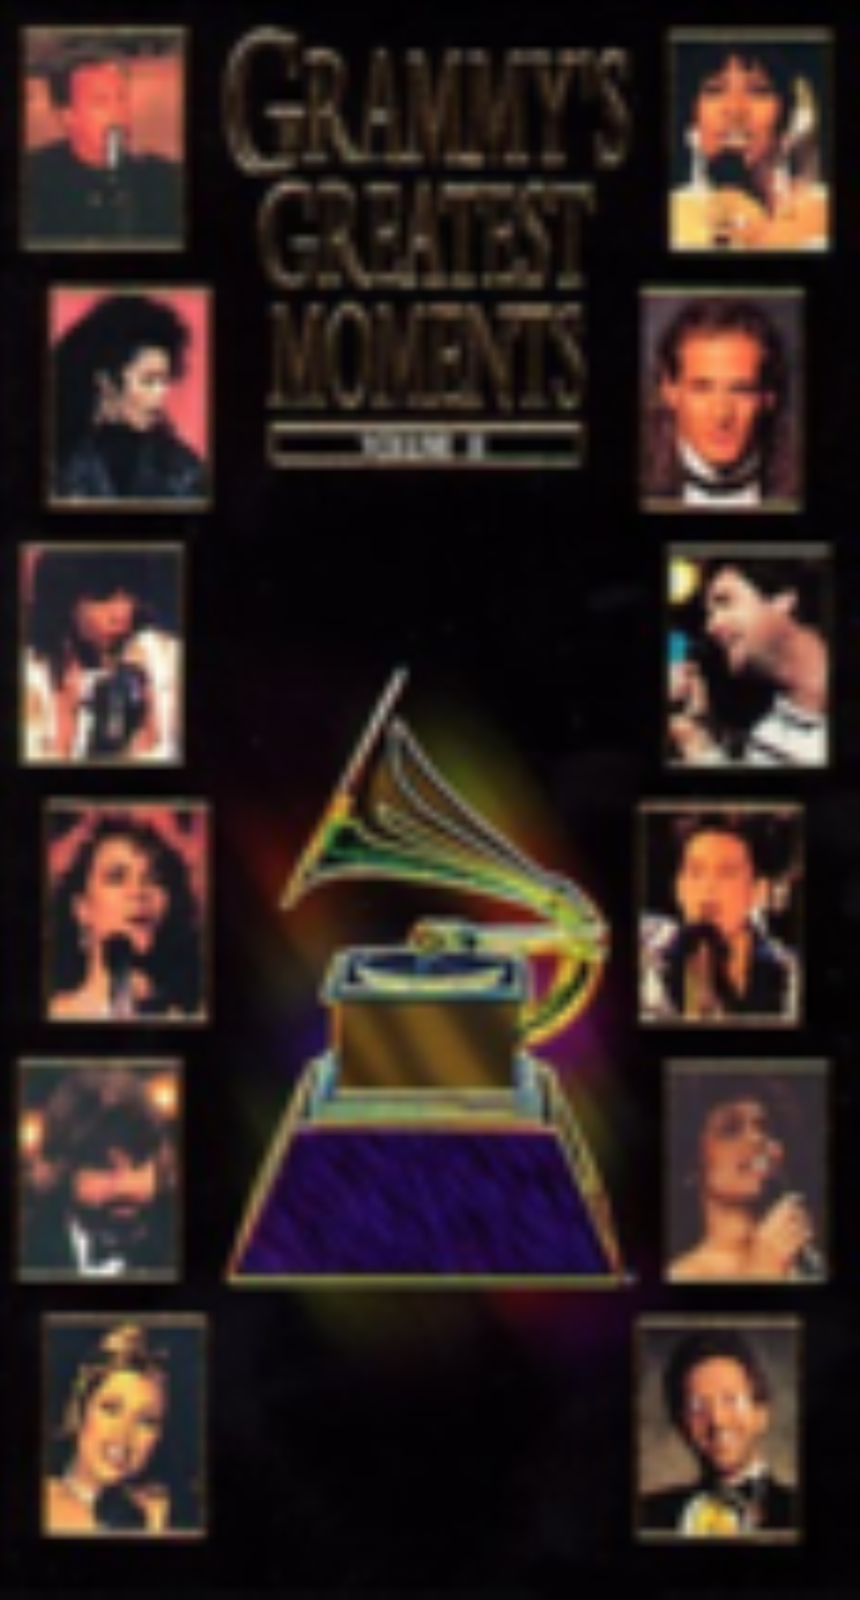 Grammy's Greatest Moments, Vol. 2 Vhs